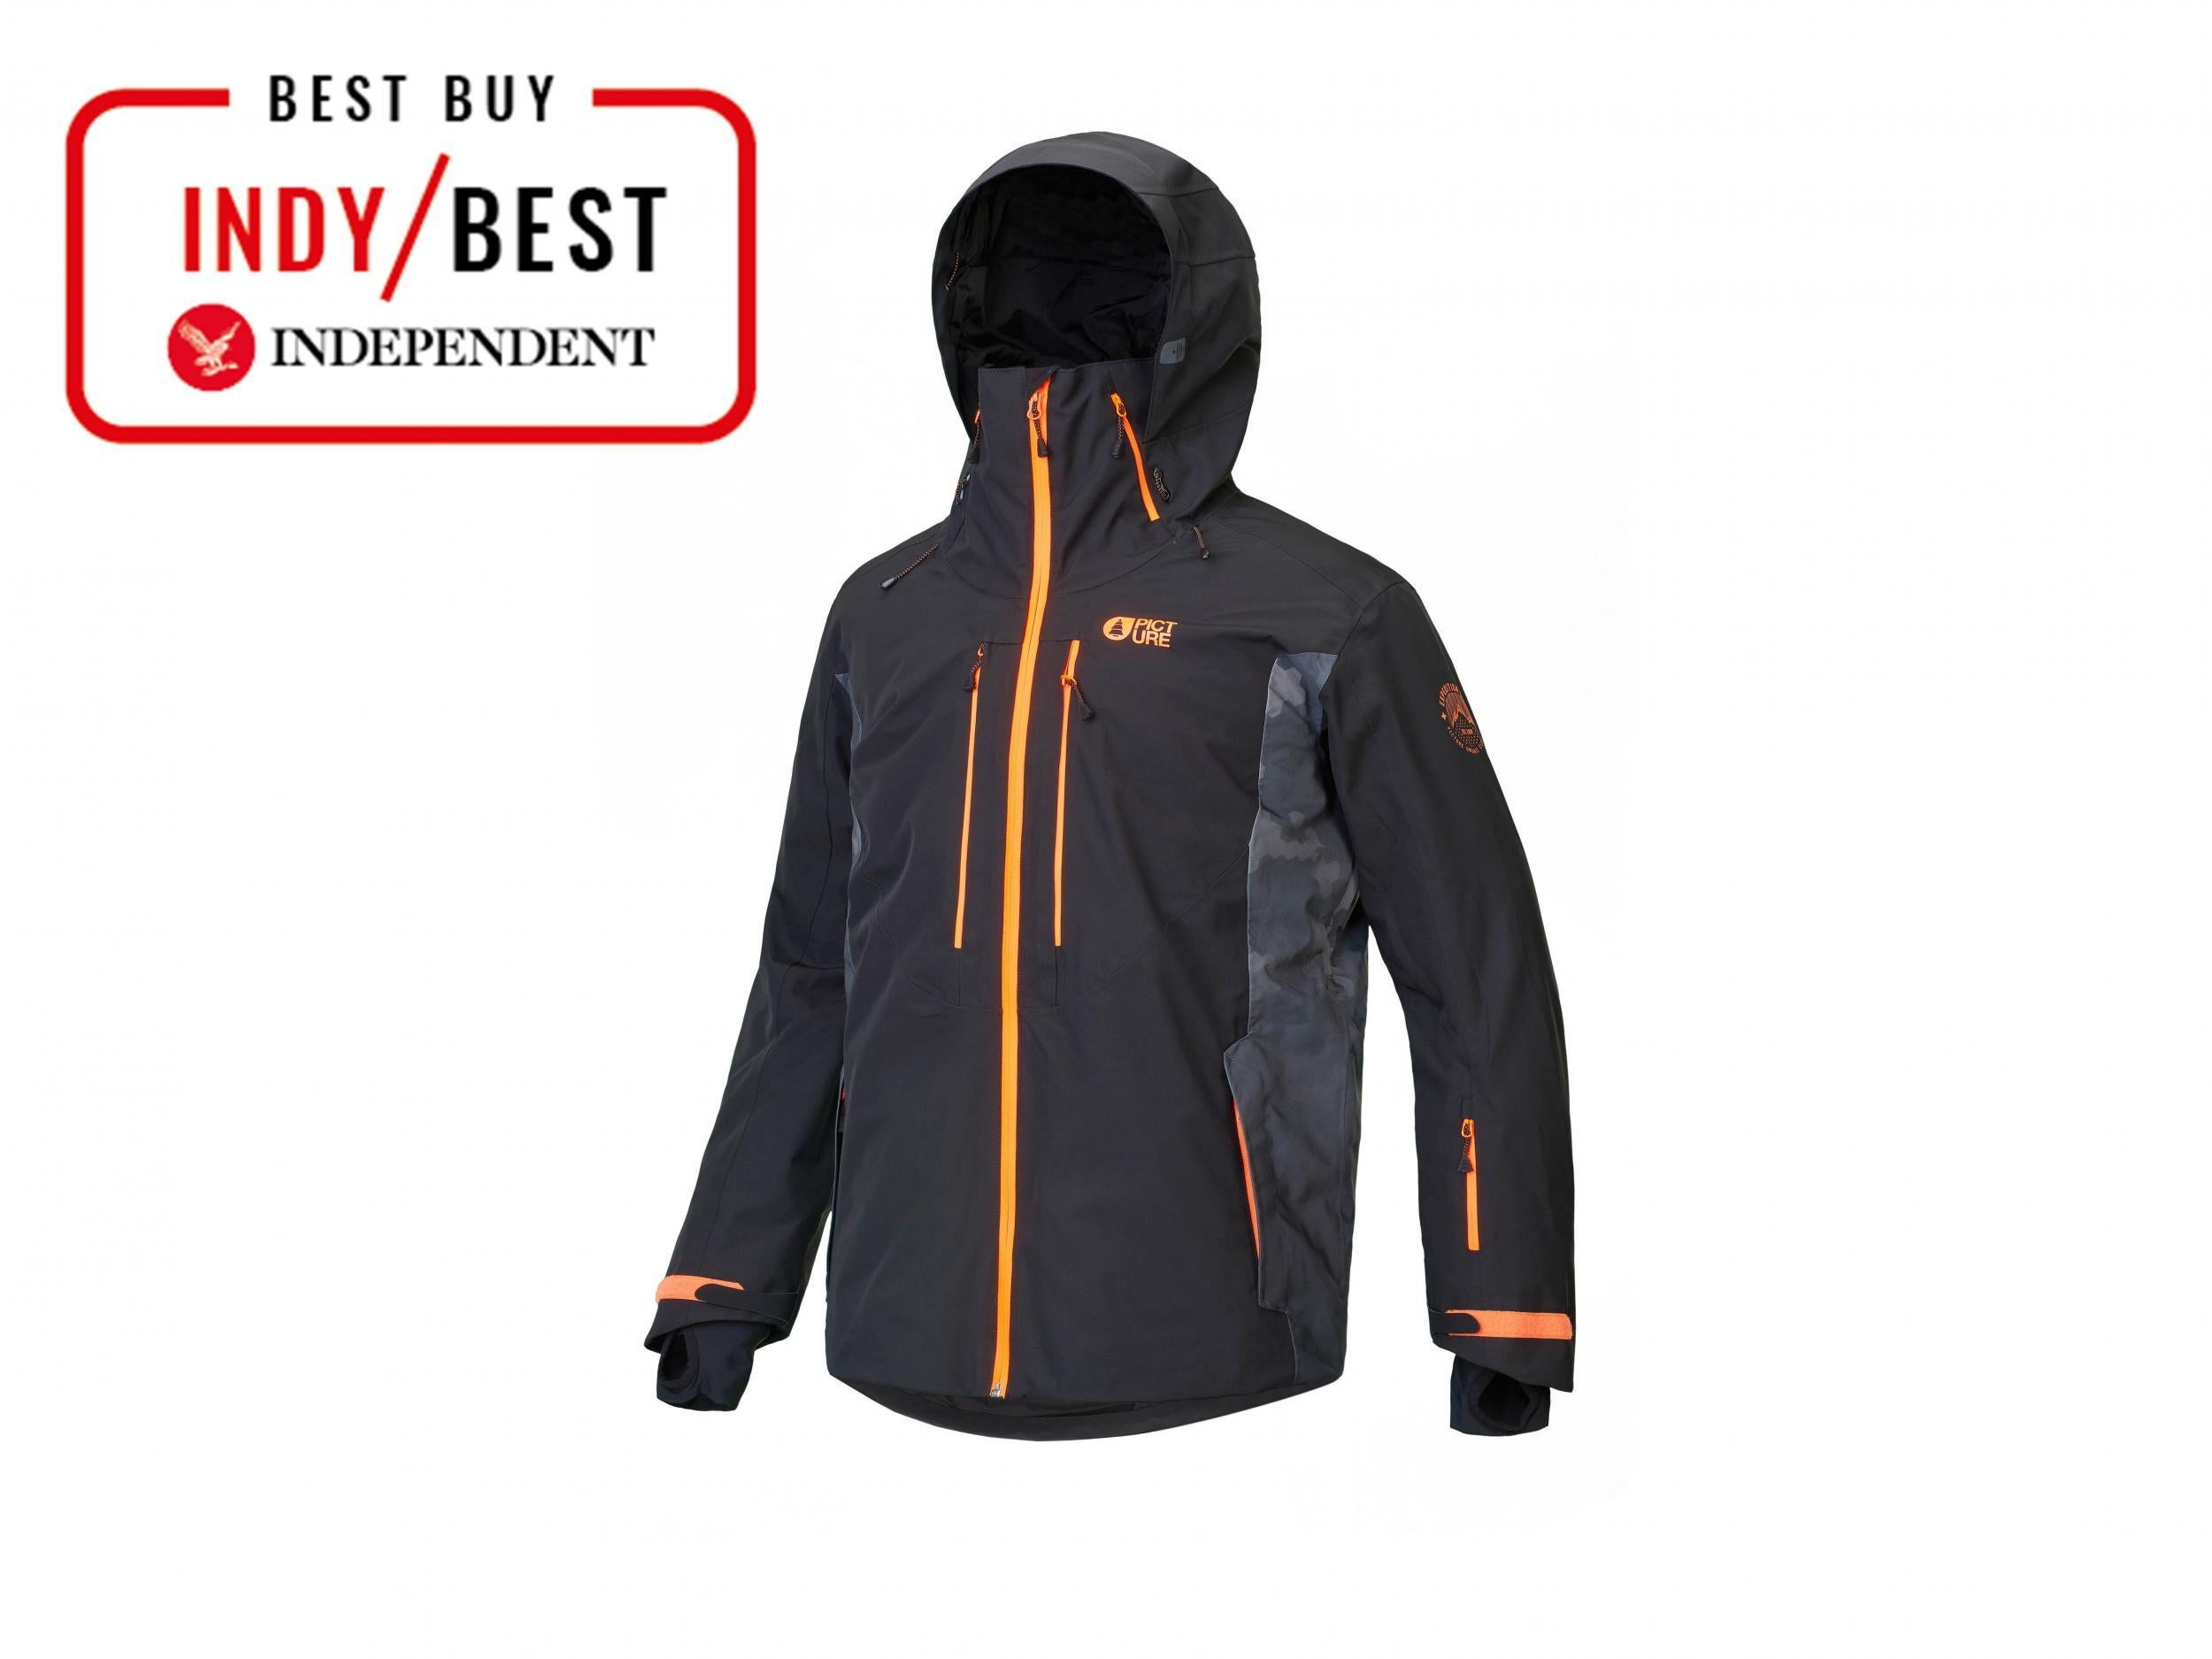 b94e28d9c 13 best men's ski and snowboard jackets | The Independent